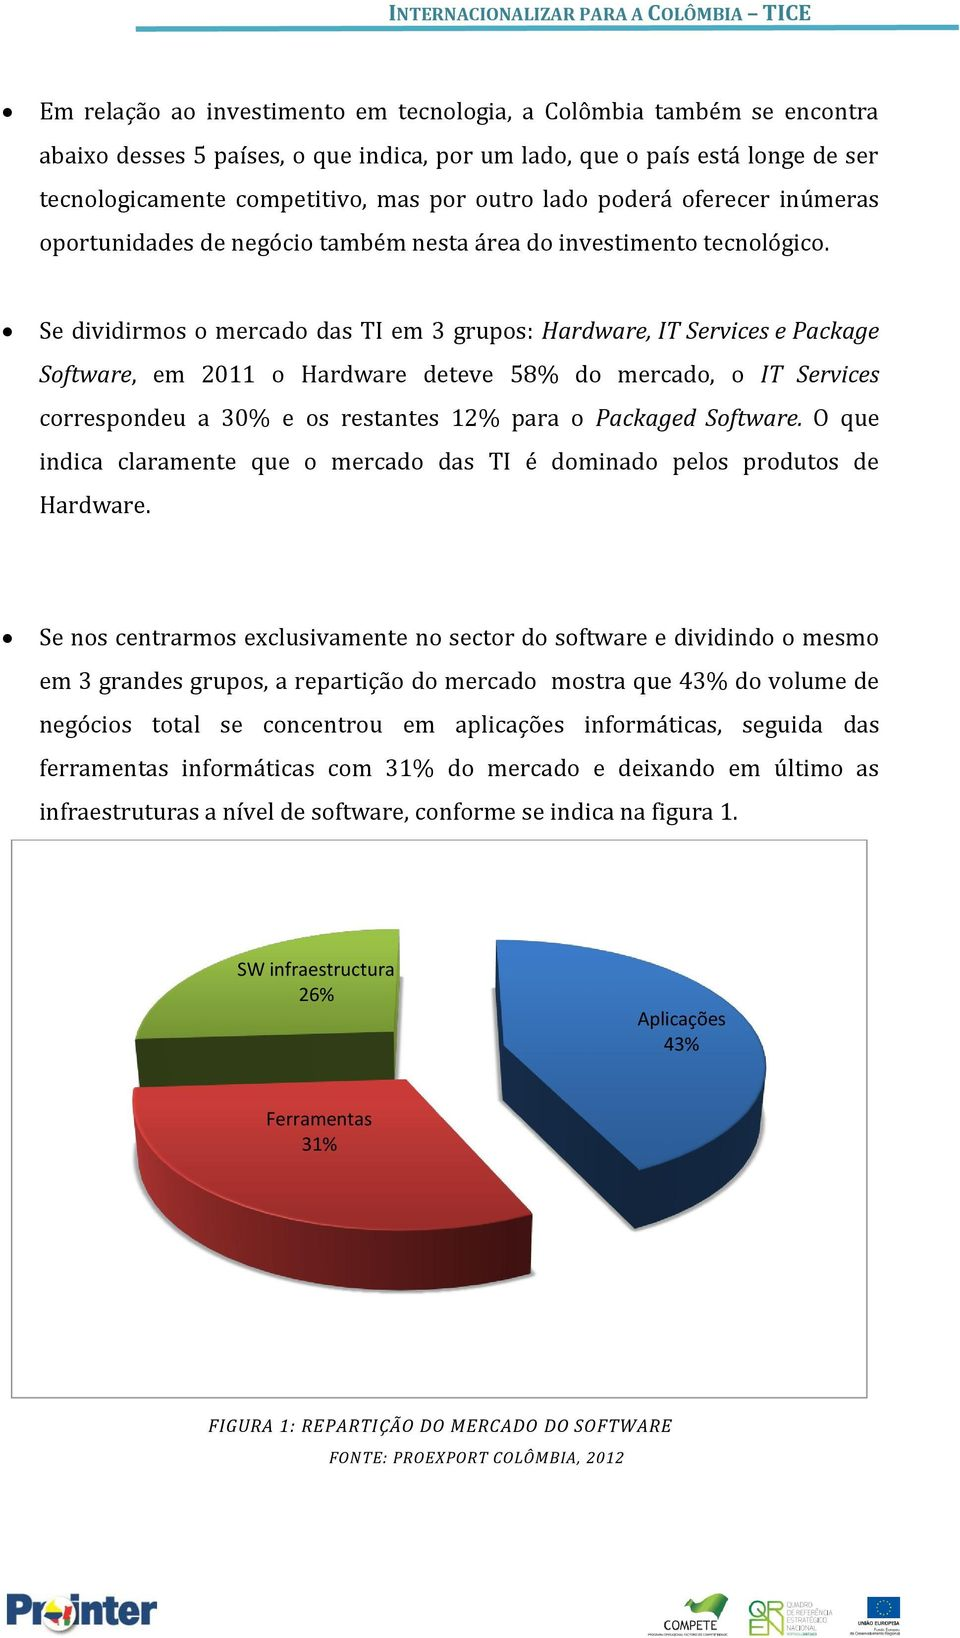 Se dividirmos o mercado das TI em 3 grupos: Hardware, IT Services e Package Software, em 2011 o Hardware deteve 58% do mercado, o IT Services correspondeu a 30% e os restantes 12% para o Packaged